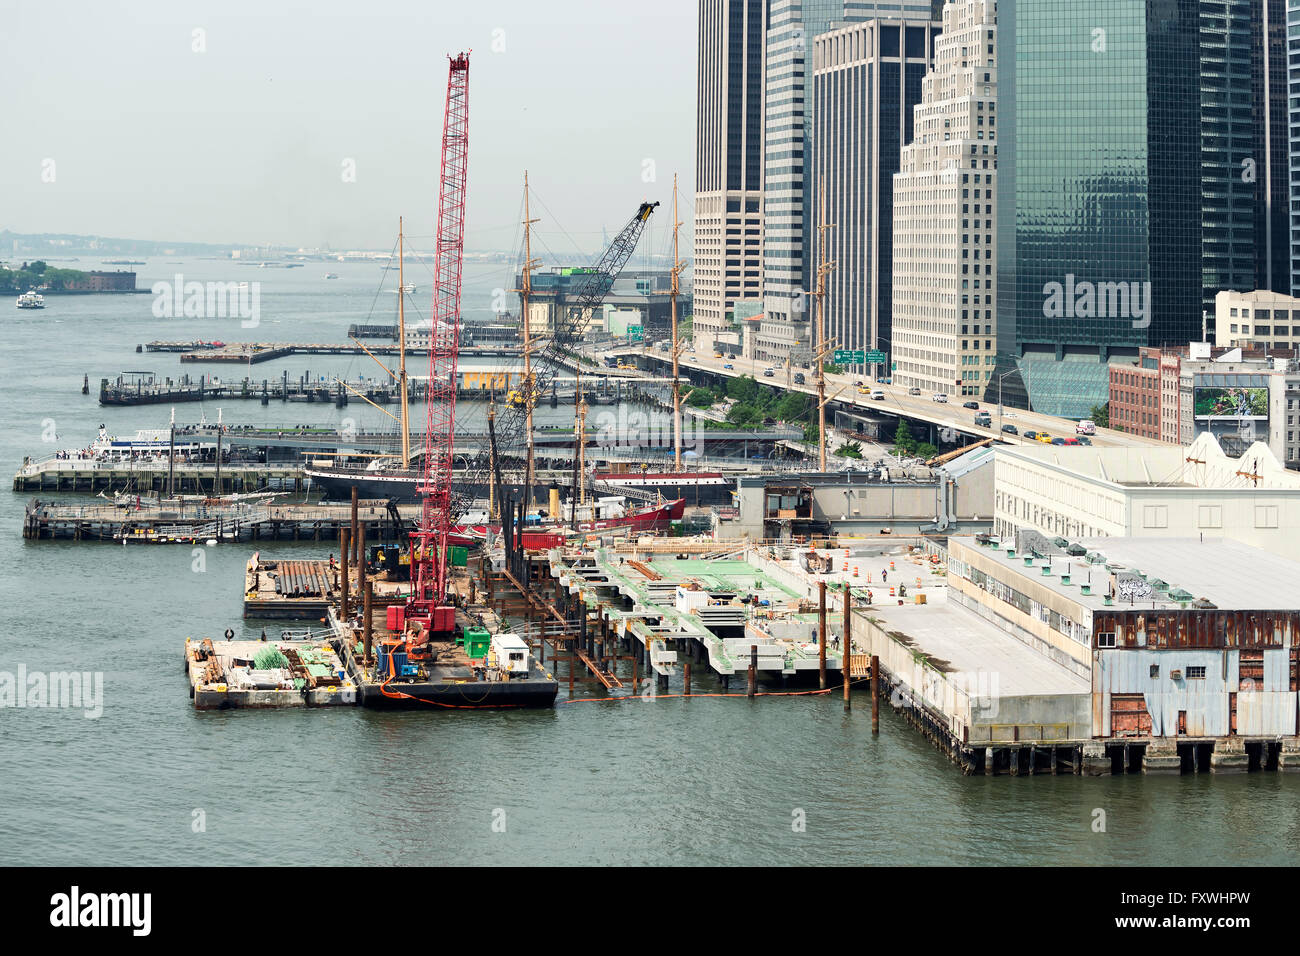 NEW YORK CITY, USA - JUNE 12, 2015: Construction site and pier on Hudson river, along the highway in New York City. Stock Photo